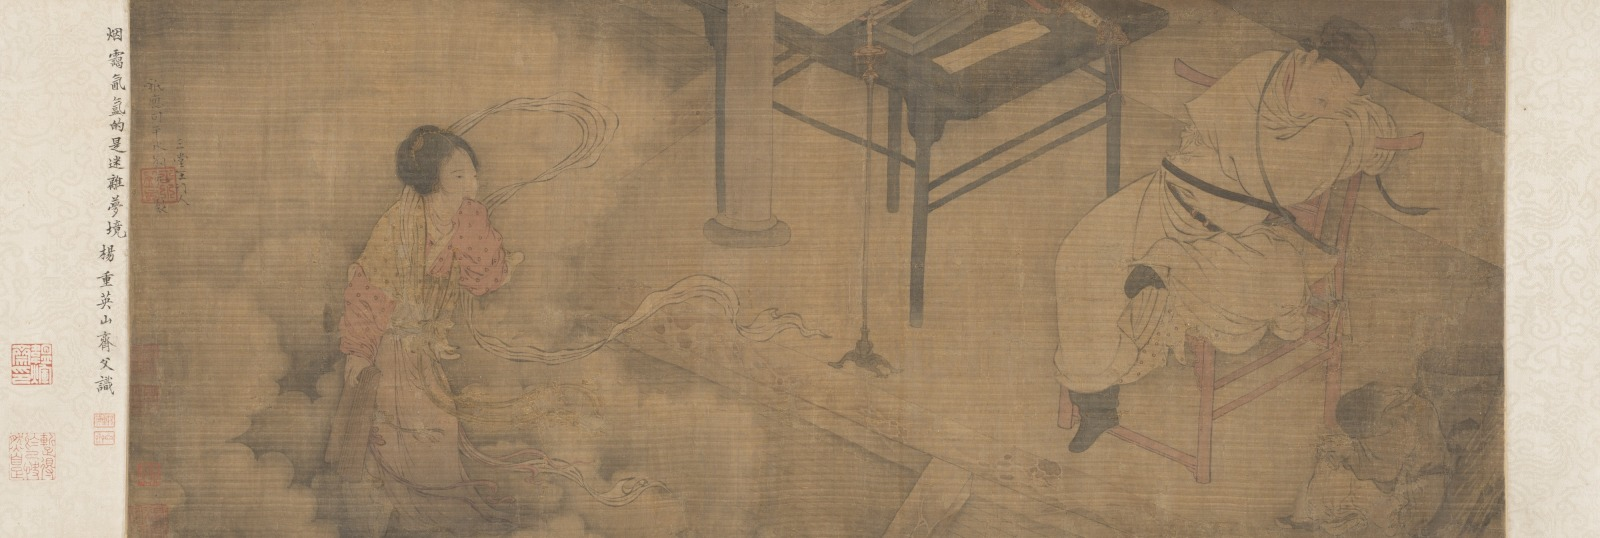 Handscroll: Sima Caizhong's Dream of the Courtesan, Su Xiaoxiao